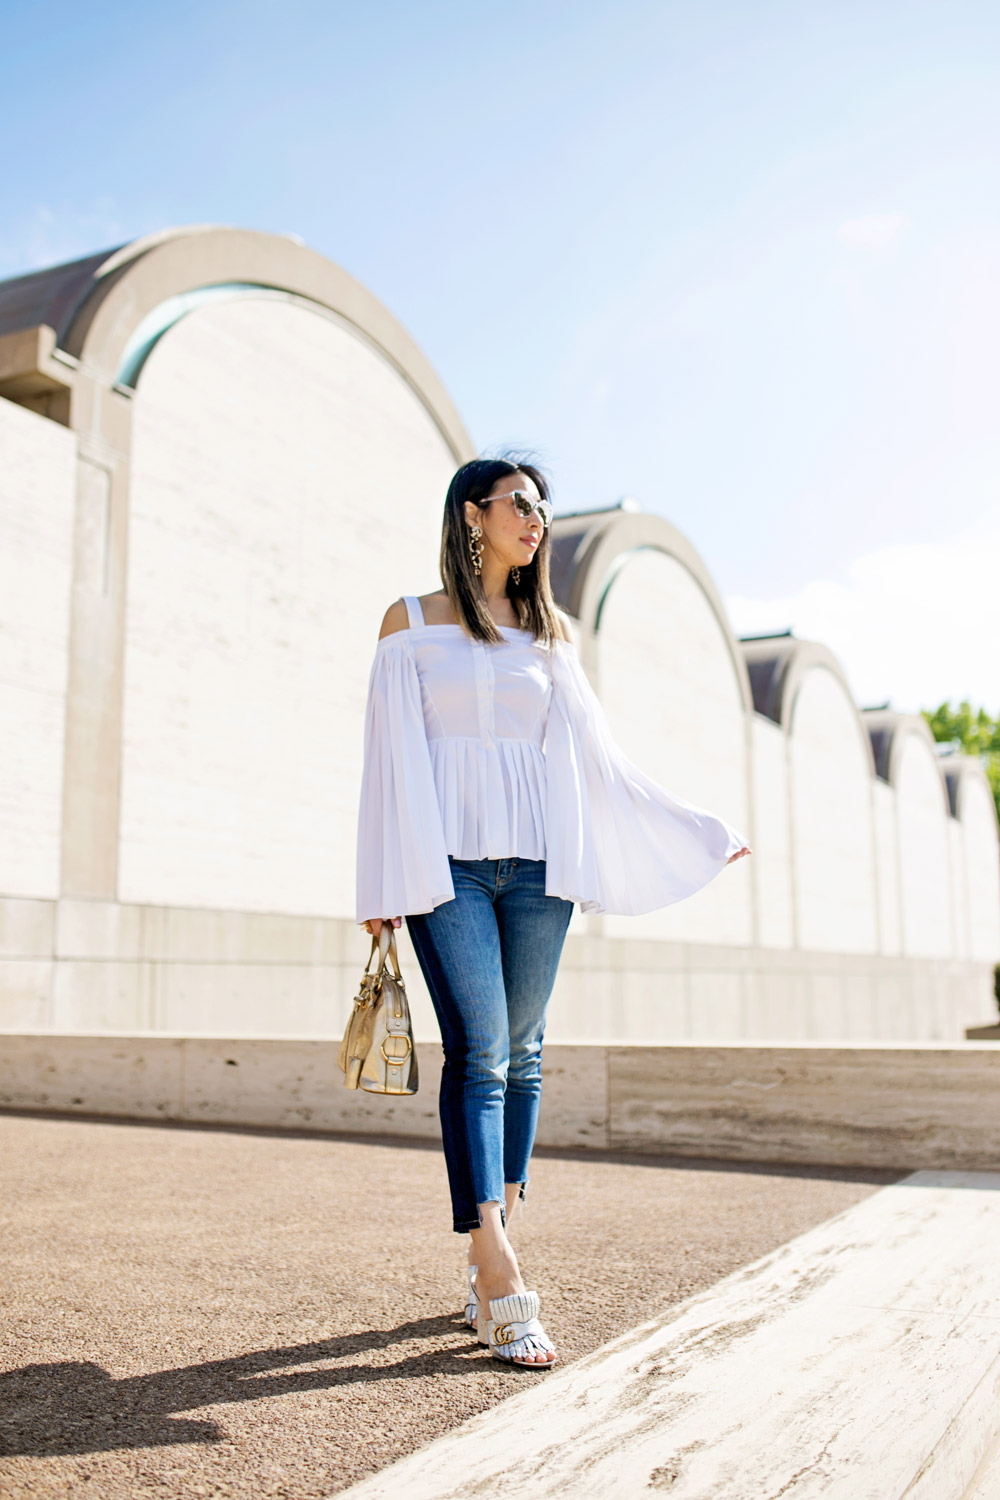 charles youssef pleated off the shoulder top with lele sadoughi windchime earrings and whbm tuxedo jeans, gucci marmont silver loafers, ysl mini muse gold